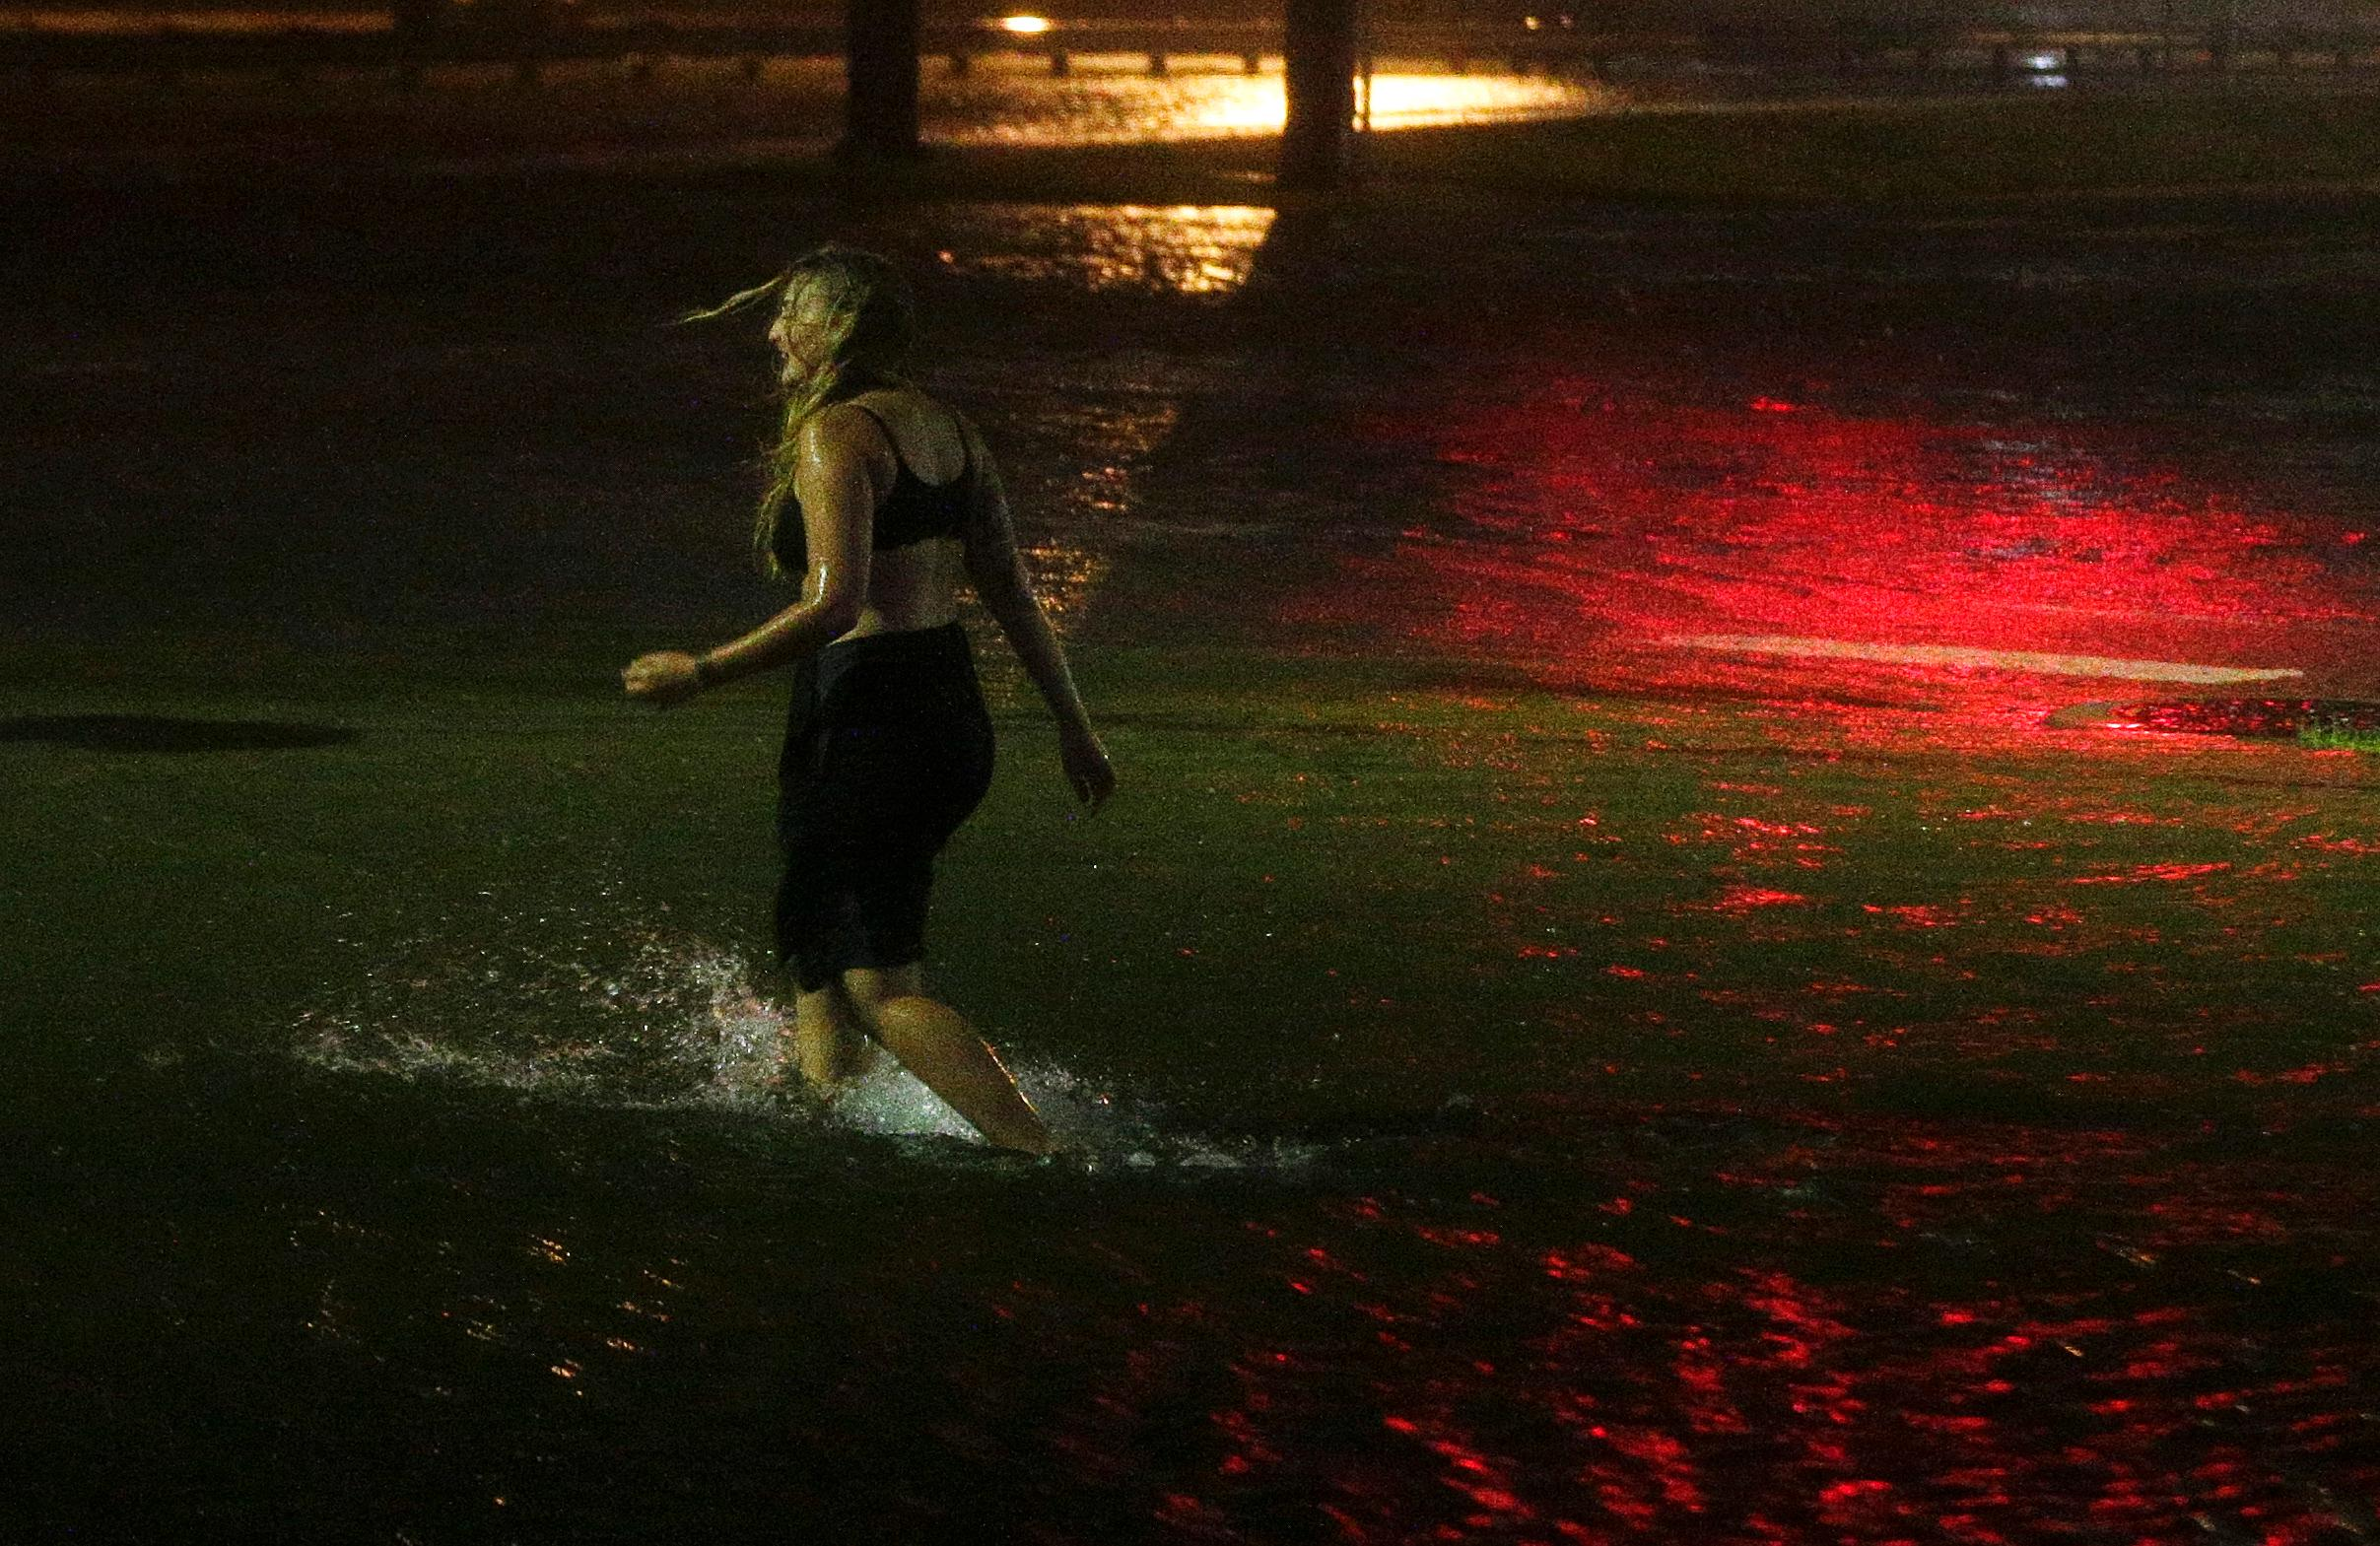 A woman wades through a flooded Water St. in downtown Mobile, Ala., during Hurricane Nate, Sunday, Oct. 8, 2017, in Mobile, Ala.  Hurricane Nate came ashore along Mississippi's coast outside Biloxi early Sunday, the first hurricane to make landfall in the state since Hurricane Katrina in 2005.(AP Photo/Brynn Anderson)